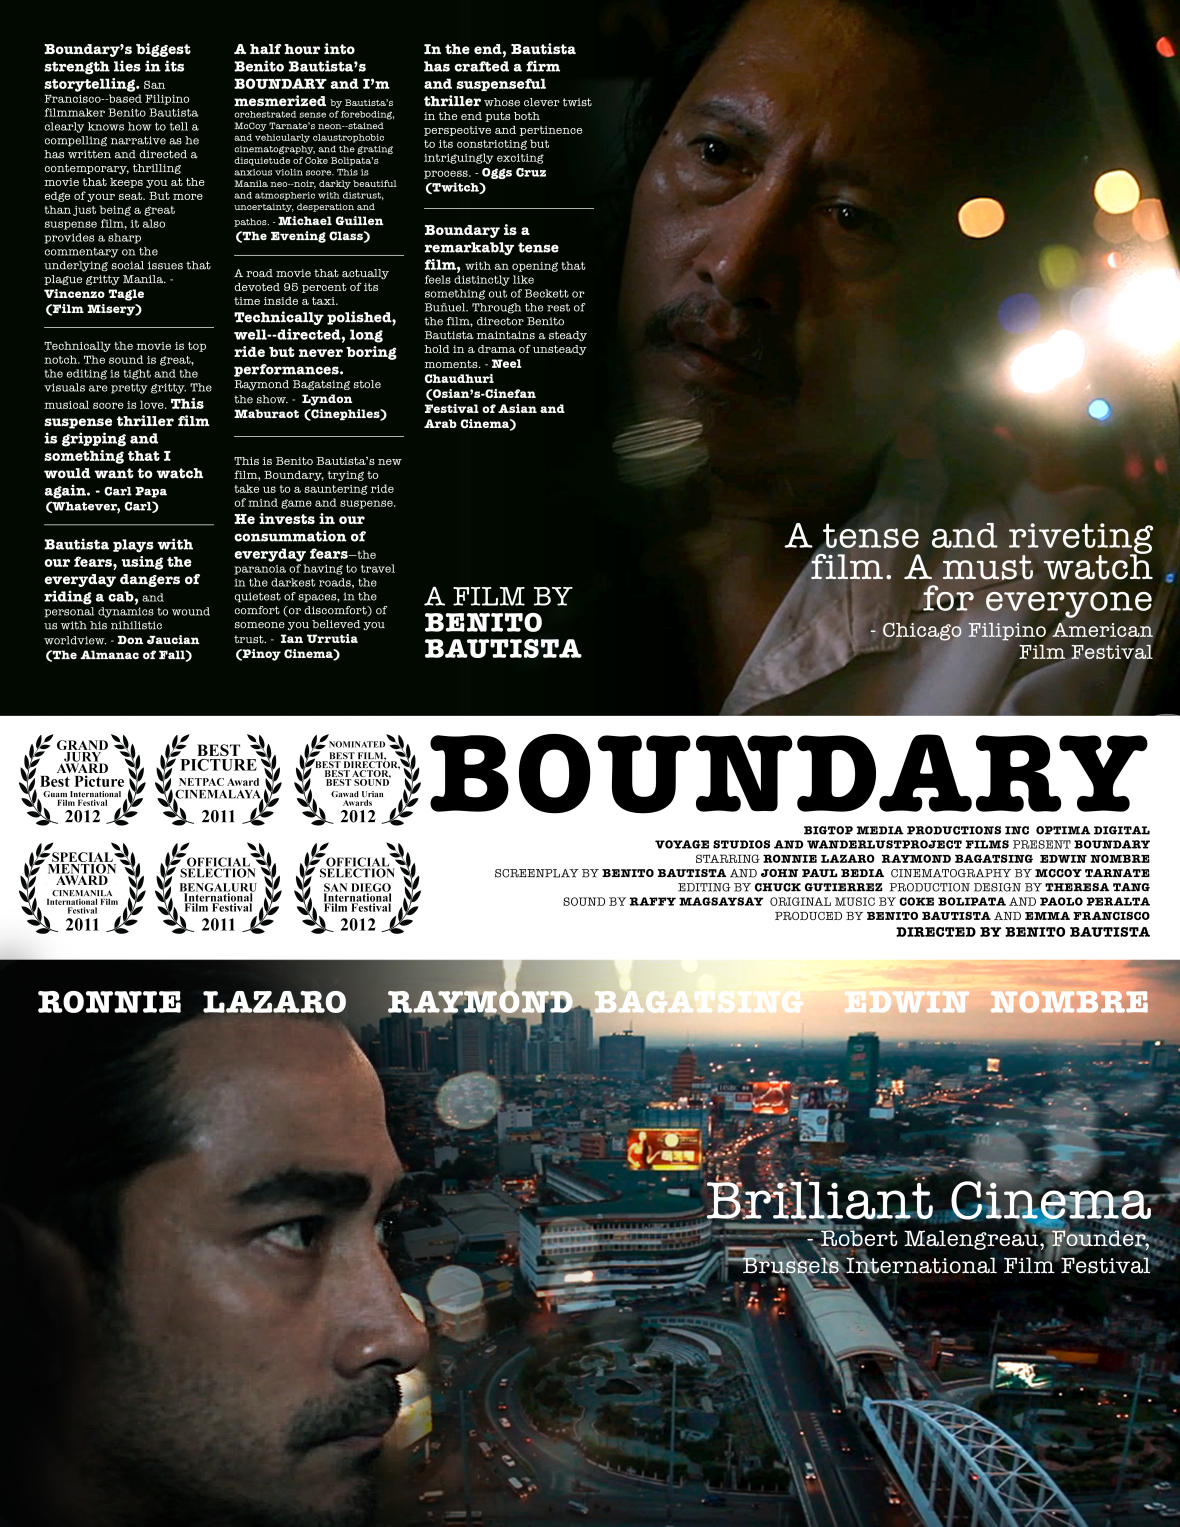 Boundary Film 2011   Director Benito Bautista ( The Gift of Barong, HARANA ) refashions true stories of Manila's taxi cab drivers into an ominous, unpredictable ride from the dark streets of Manila to the isolated hills of Antipolo.  It's only a few days before Christmas in Manila and struggling cab driver Limuel needs to reach his boundary (quota of customers) by the end of the night. He picks up a wealthy-looking, generous business man trying to make his way to Antipolo. But Limuel has a plan for his naïve and unsuspecting customer – a plan that he is none too proud to carry out. Things suddenly go beyond Limuel's control as he himself is thrown from the wheel to the helpless backseat of a plot bigger than he ever expected.  Power. Deception. Morality. Desperation. The intrinsic human conflict of navigating the fine line between power and ethics can have unforeseen consequences when one starts to get too close to either side. Bautista artfully finesses these concepts while commenting on the grim issues of class and political strife that Filipinos are all too familiar with. In this claustrophobic taxi ride through the gritty streets of Manila, it is hard not to feel the tension, fear, and uncertainty these characters experience, and suddenly we're fellow captives strewn along the captivation plot.   –Written by Maryanne Bilbao, San Diego Asian Film Festival